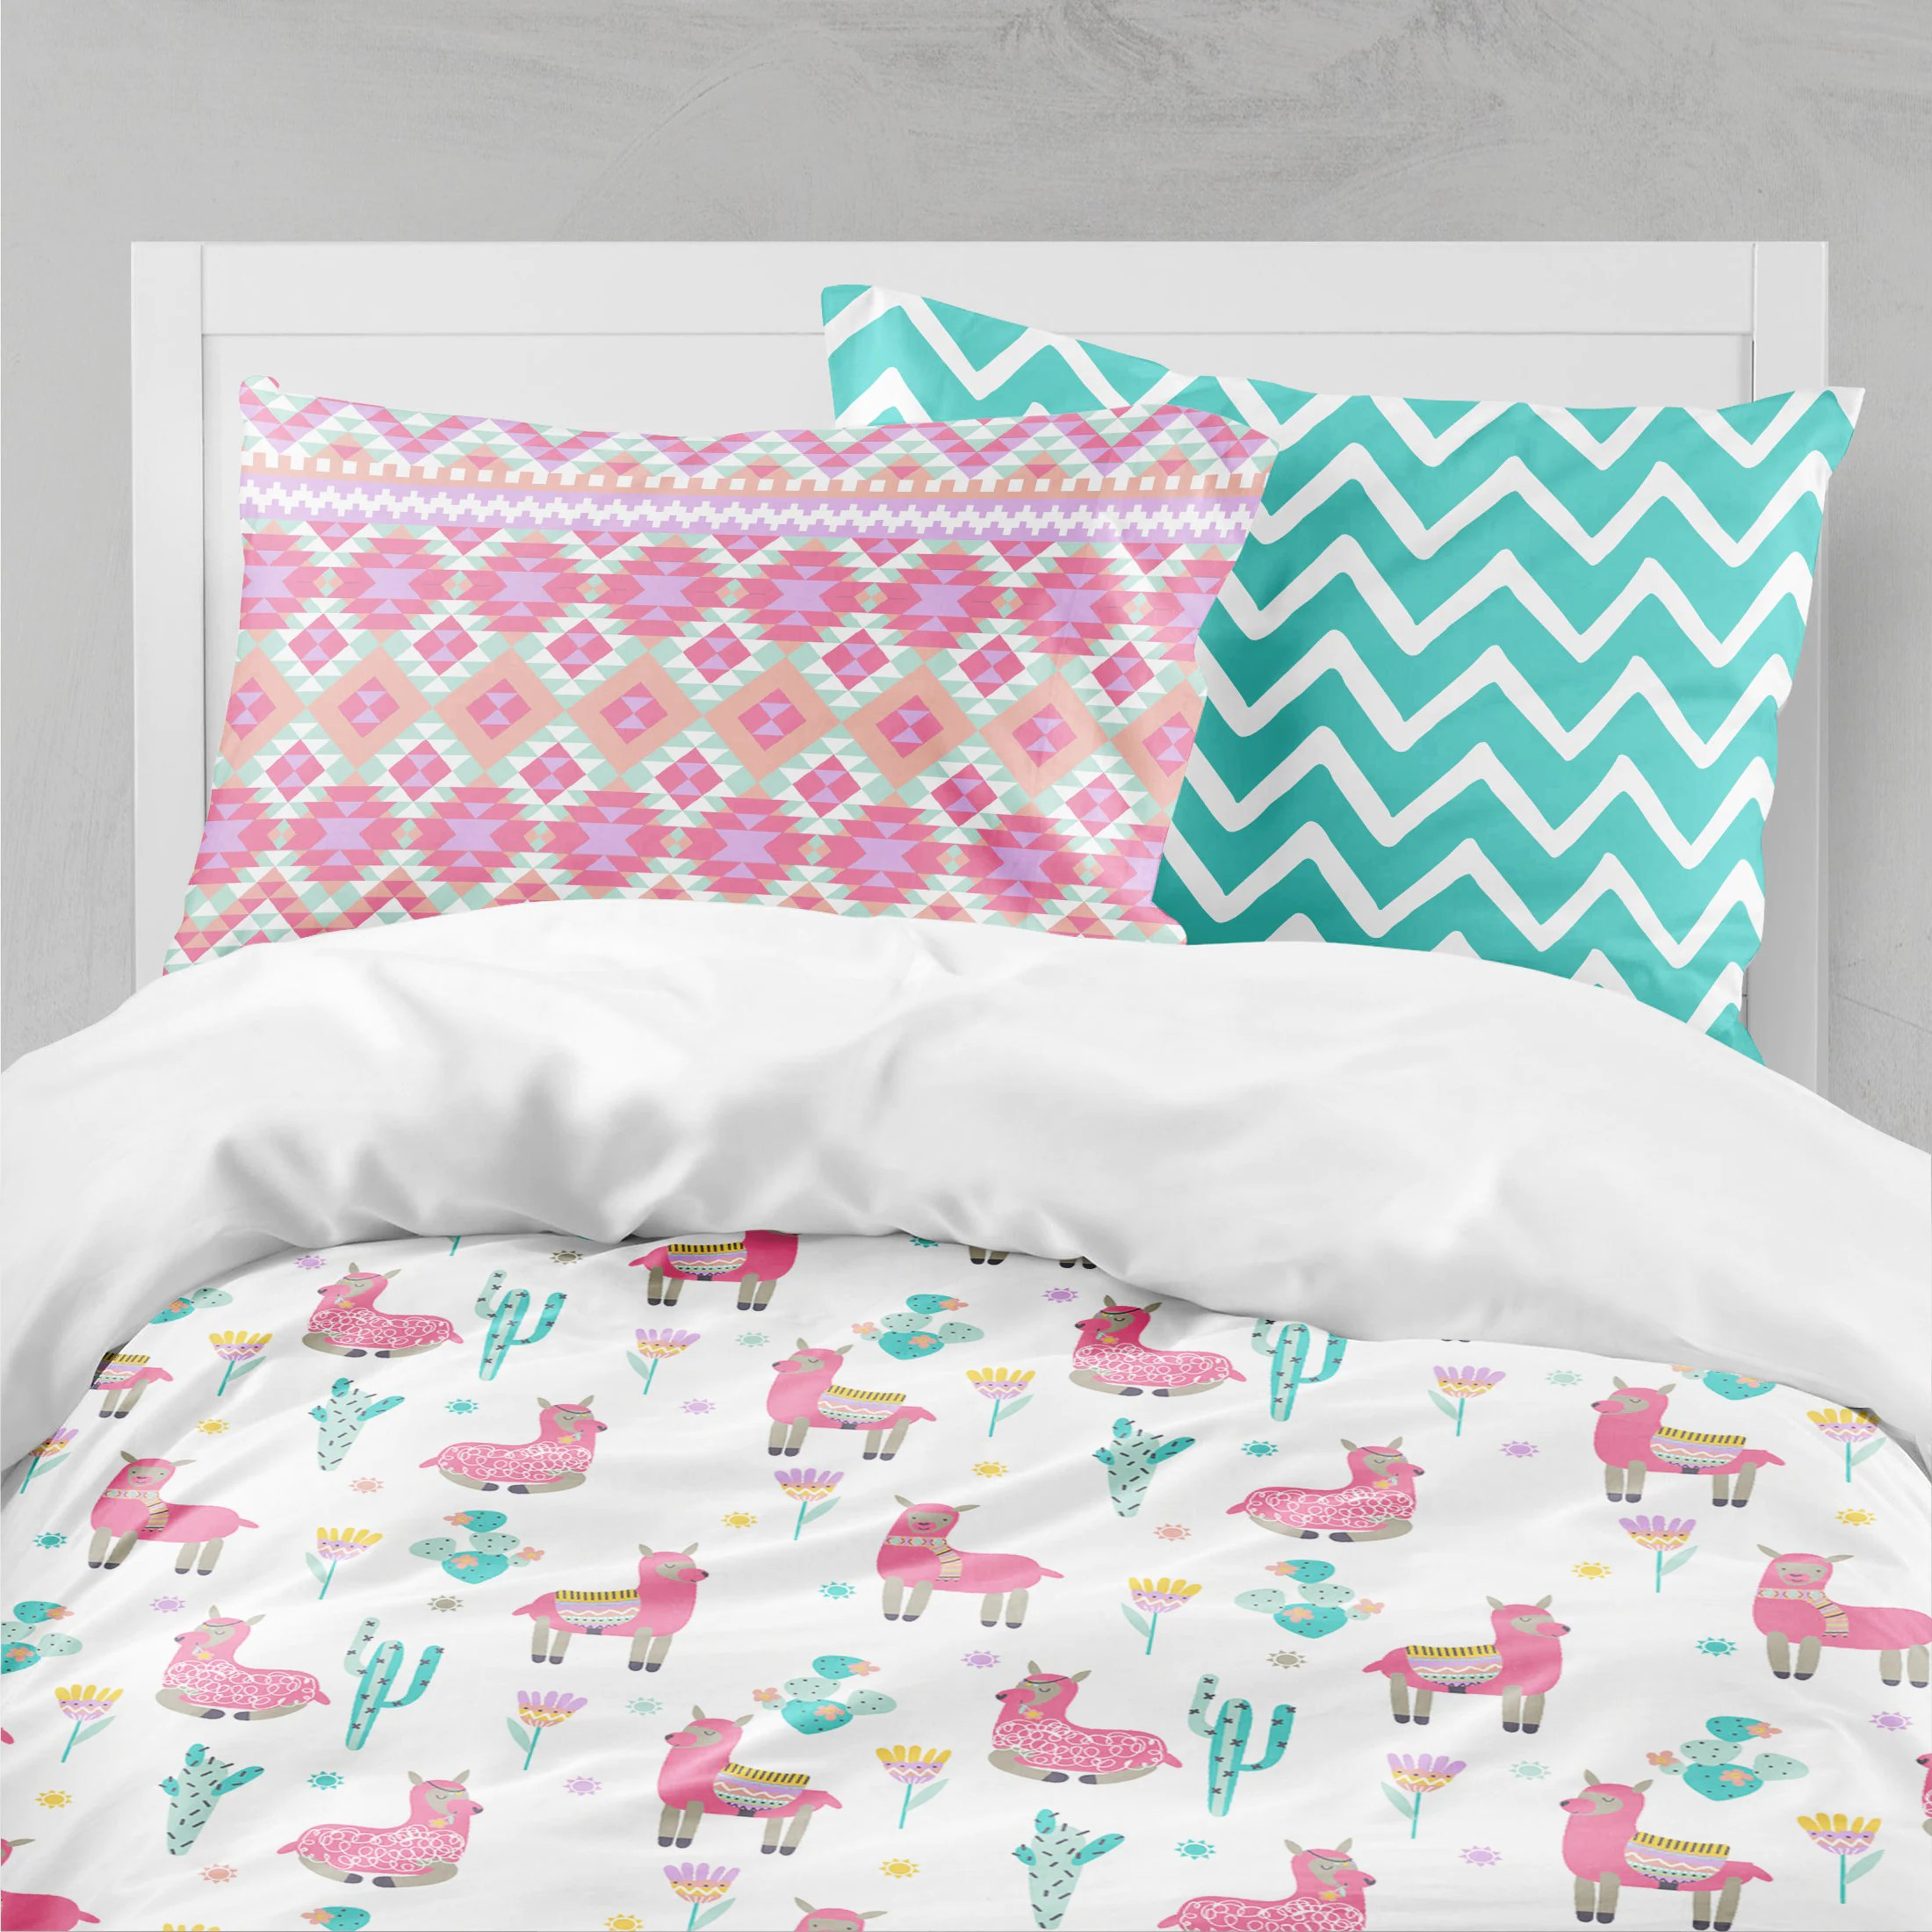 Pink Duvet Cover Llama Girls Room Pink Girls Bedding Toddler Duvet Covers Toddler Comforter Girl Twin Duvet Cover Bedding Sets Kids Teen Bedding